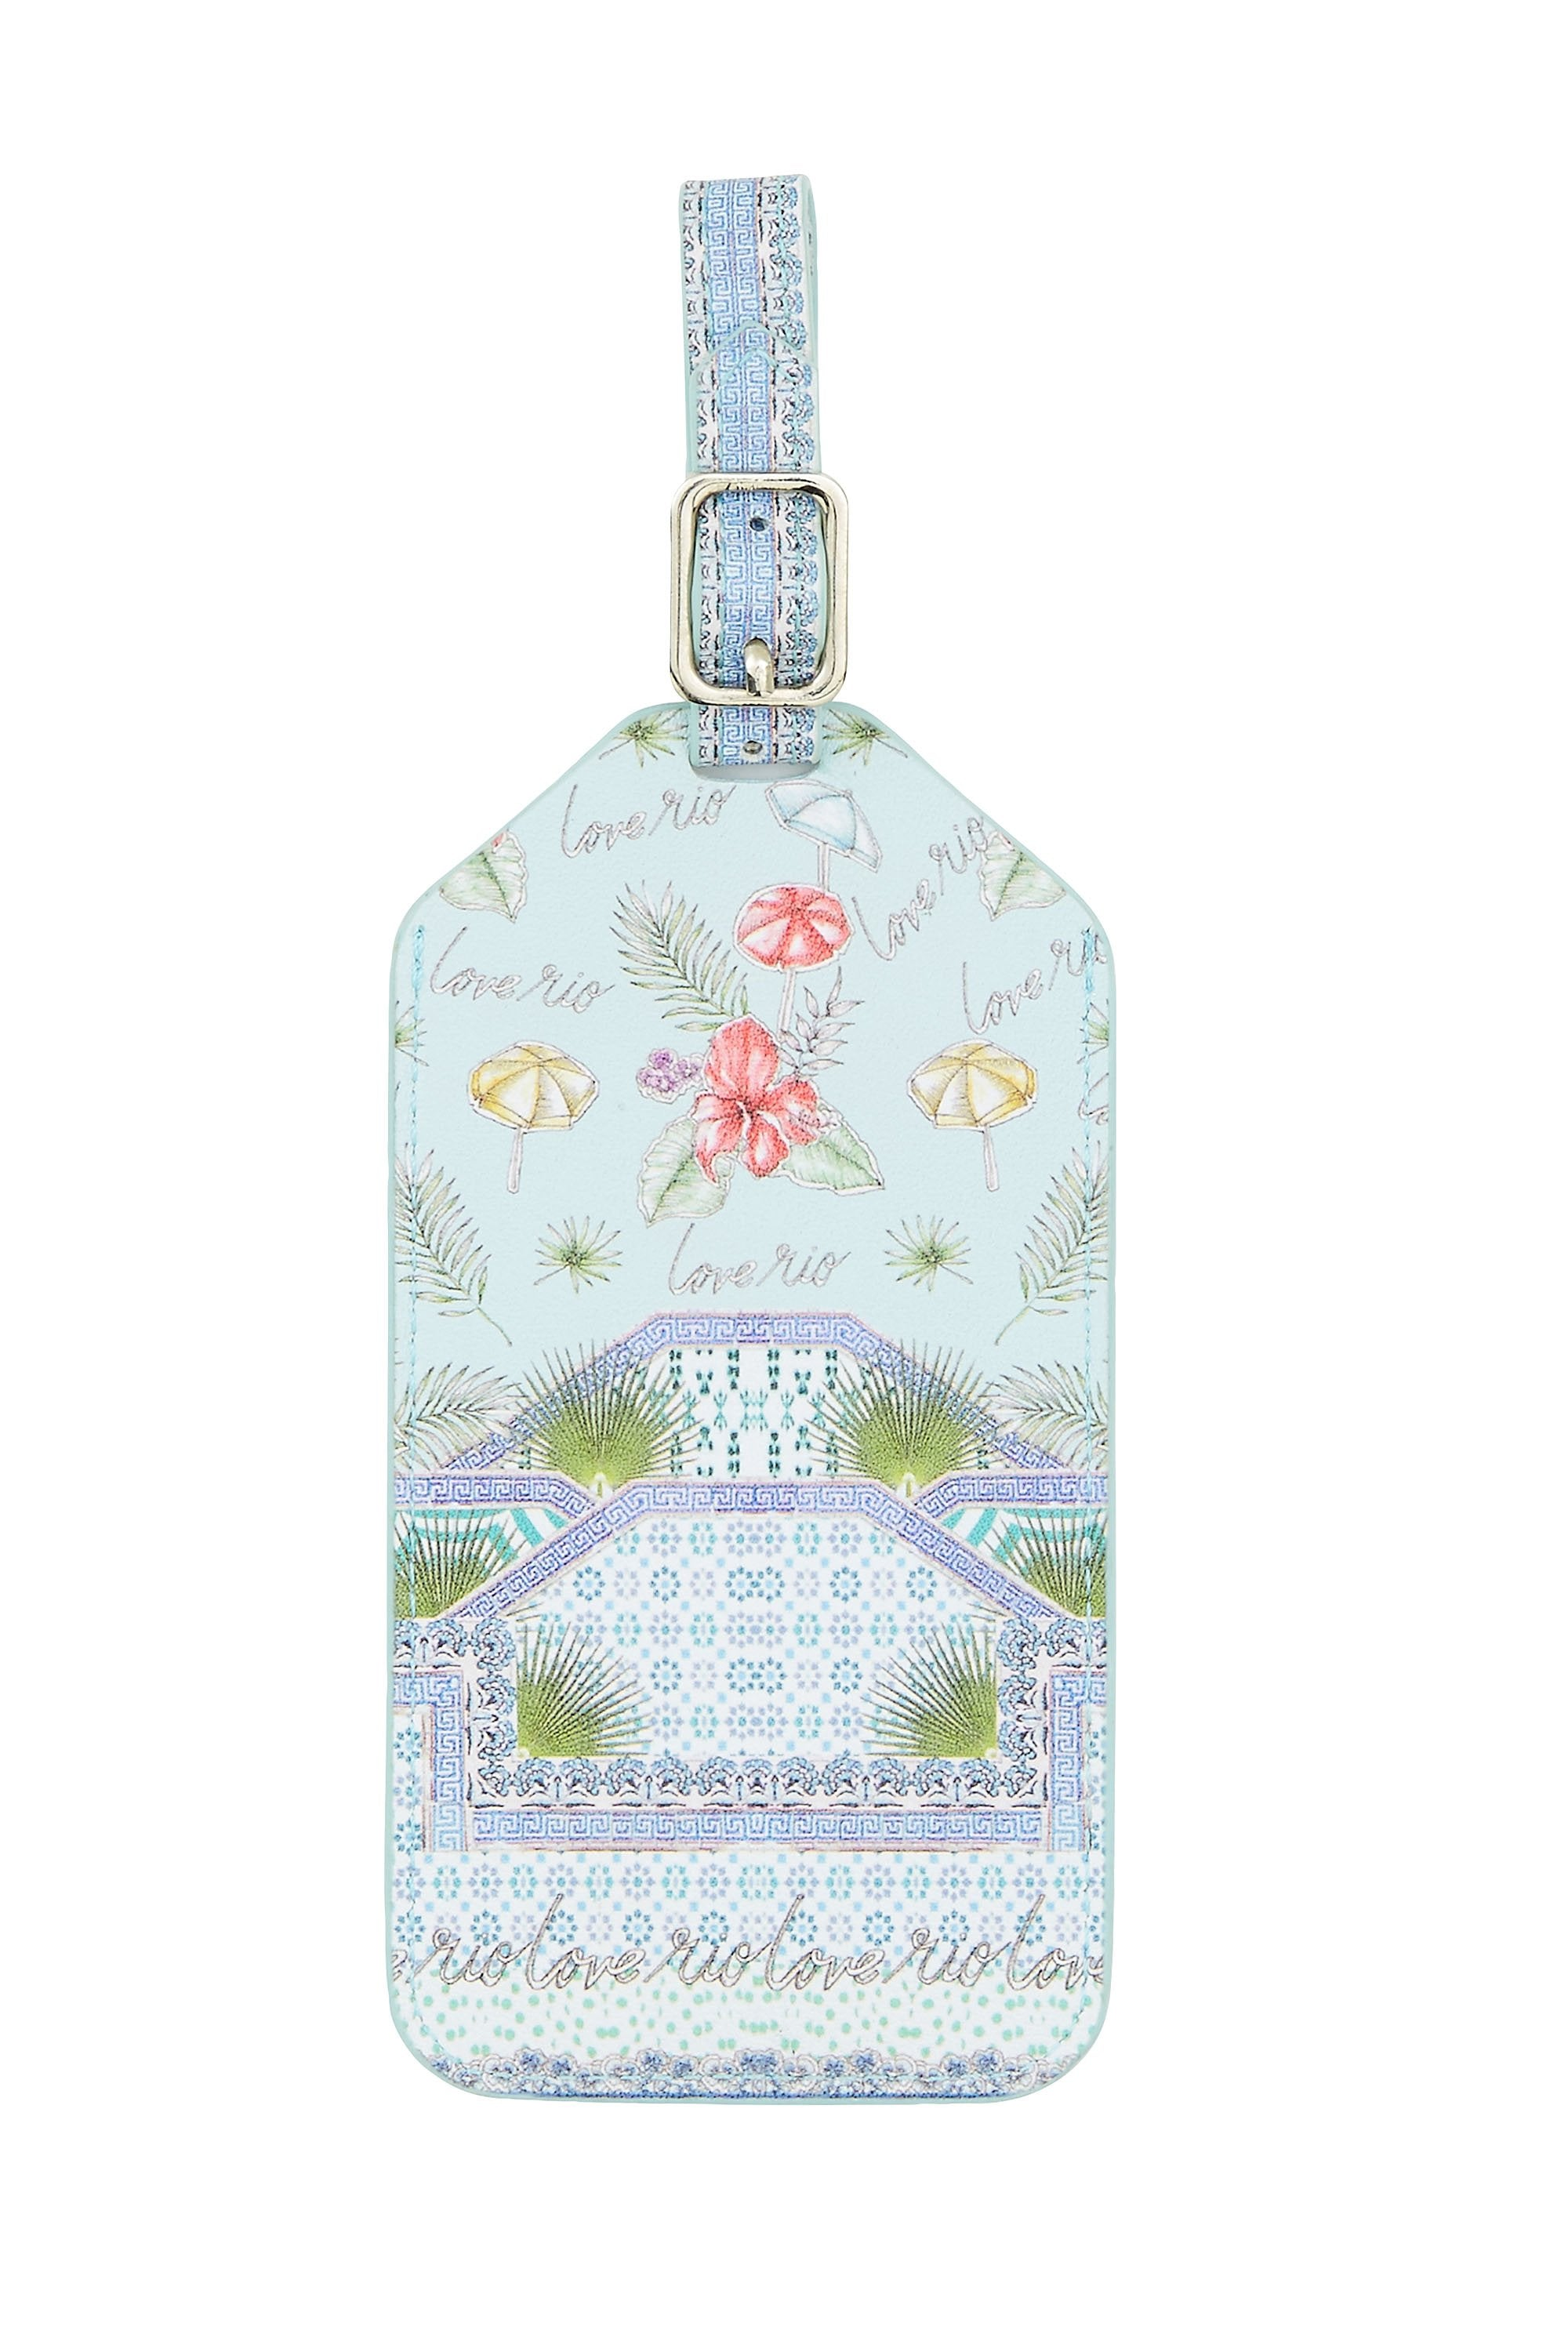 SHADES OF RIO LUGGAGE TAG